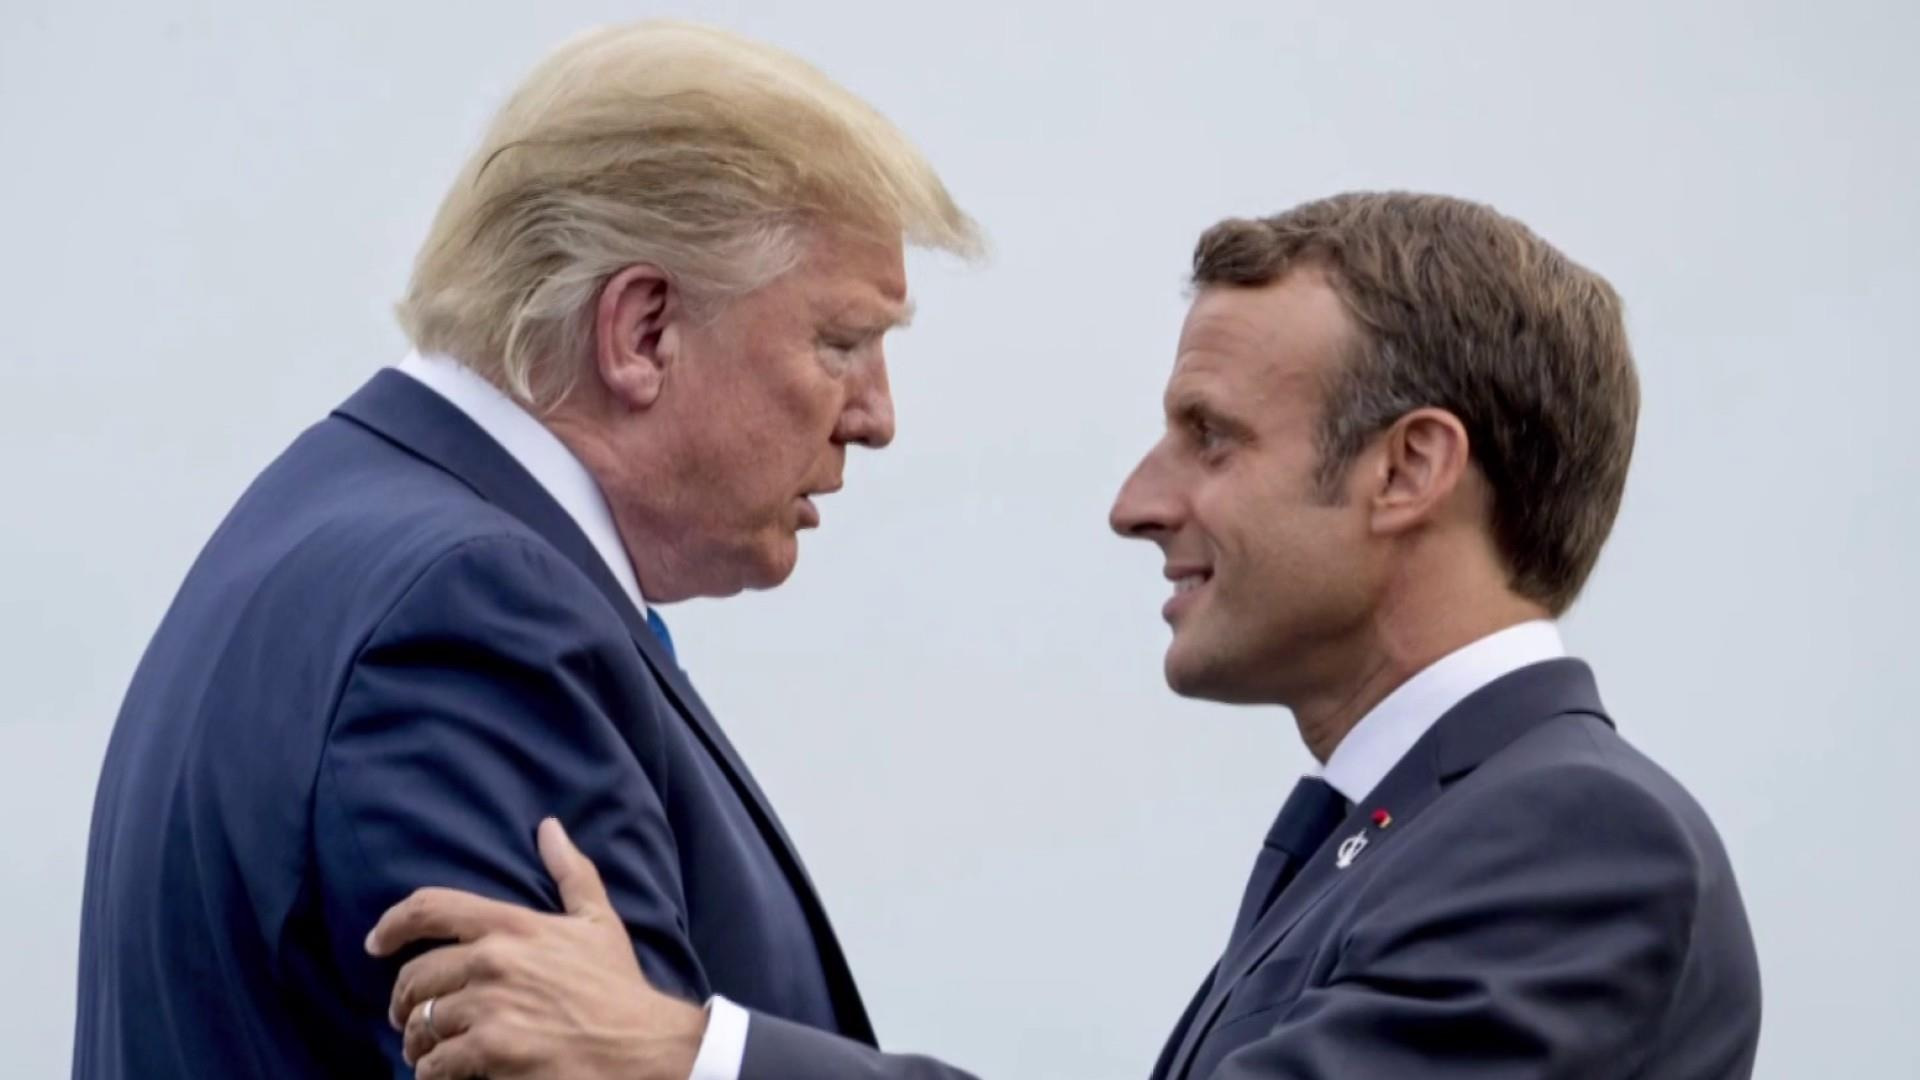 New World Disorder: Trump Sparks Confusion at G7 in France